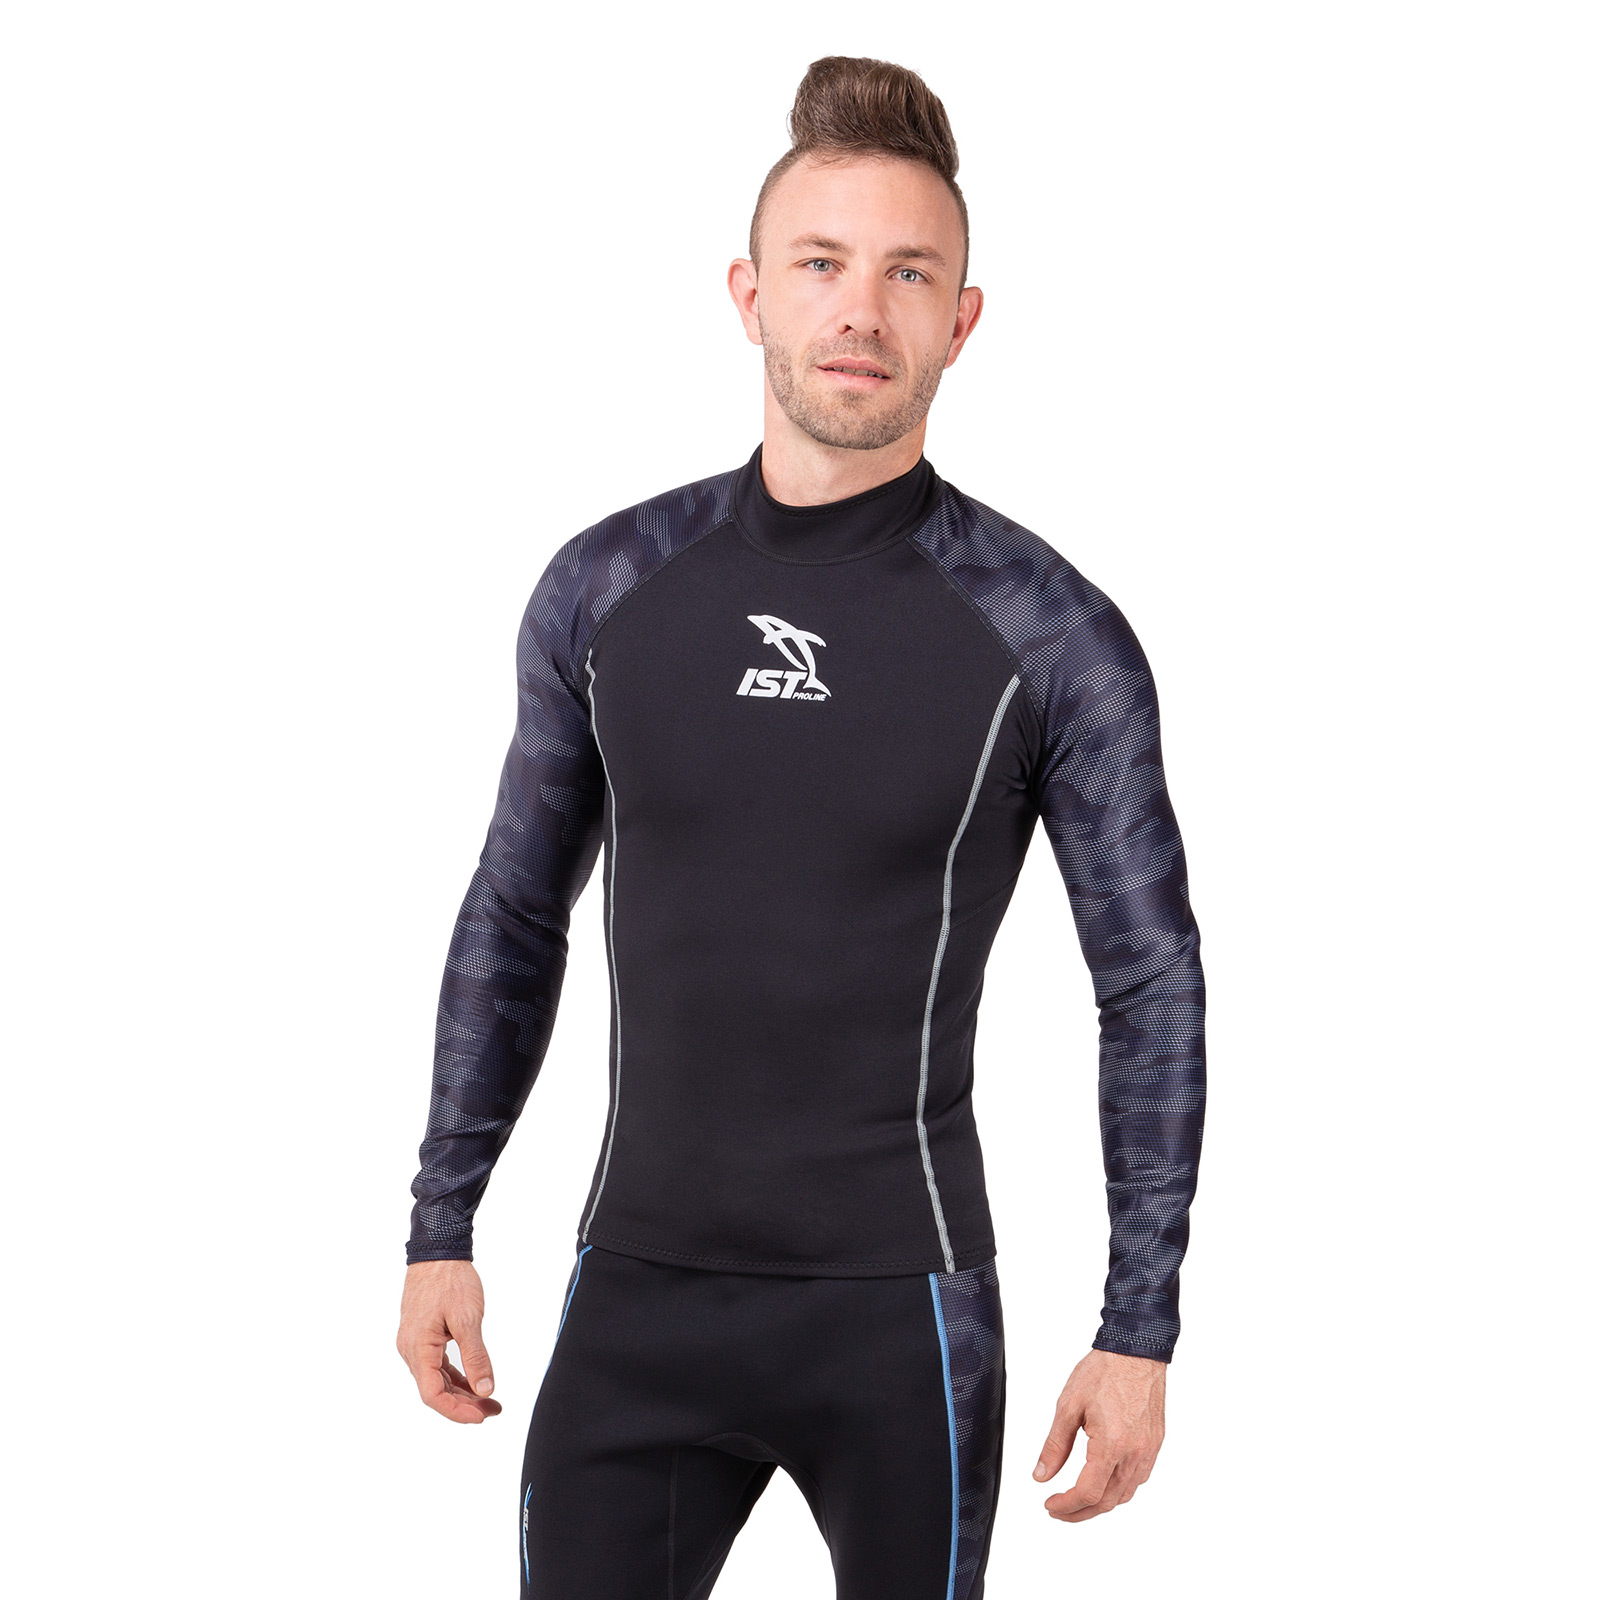 PURiGUARD 1.5mm Neoprene Top